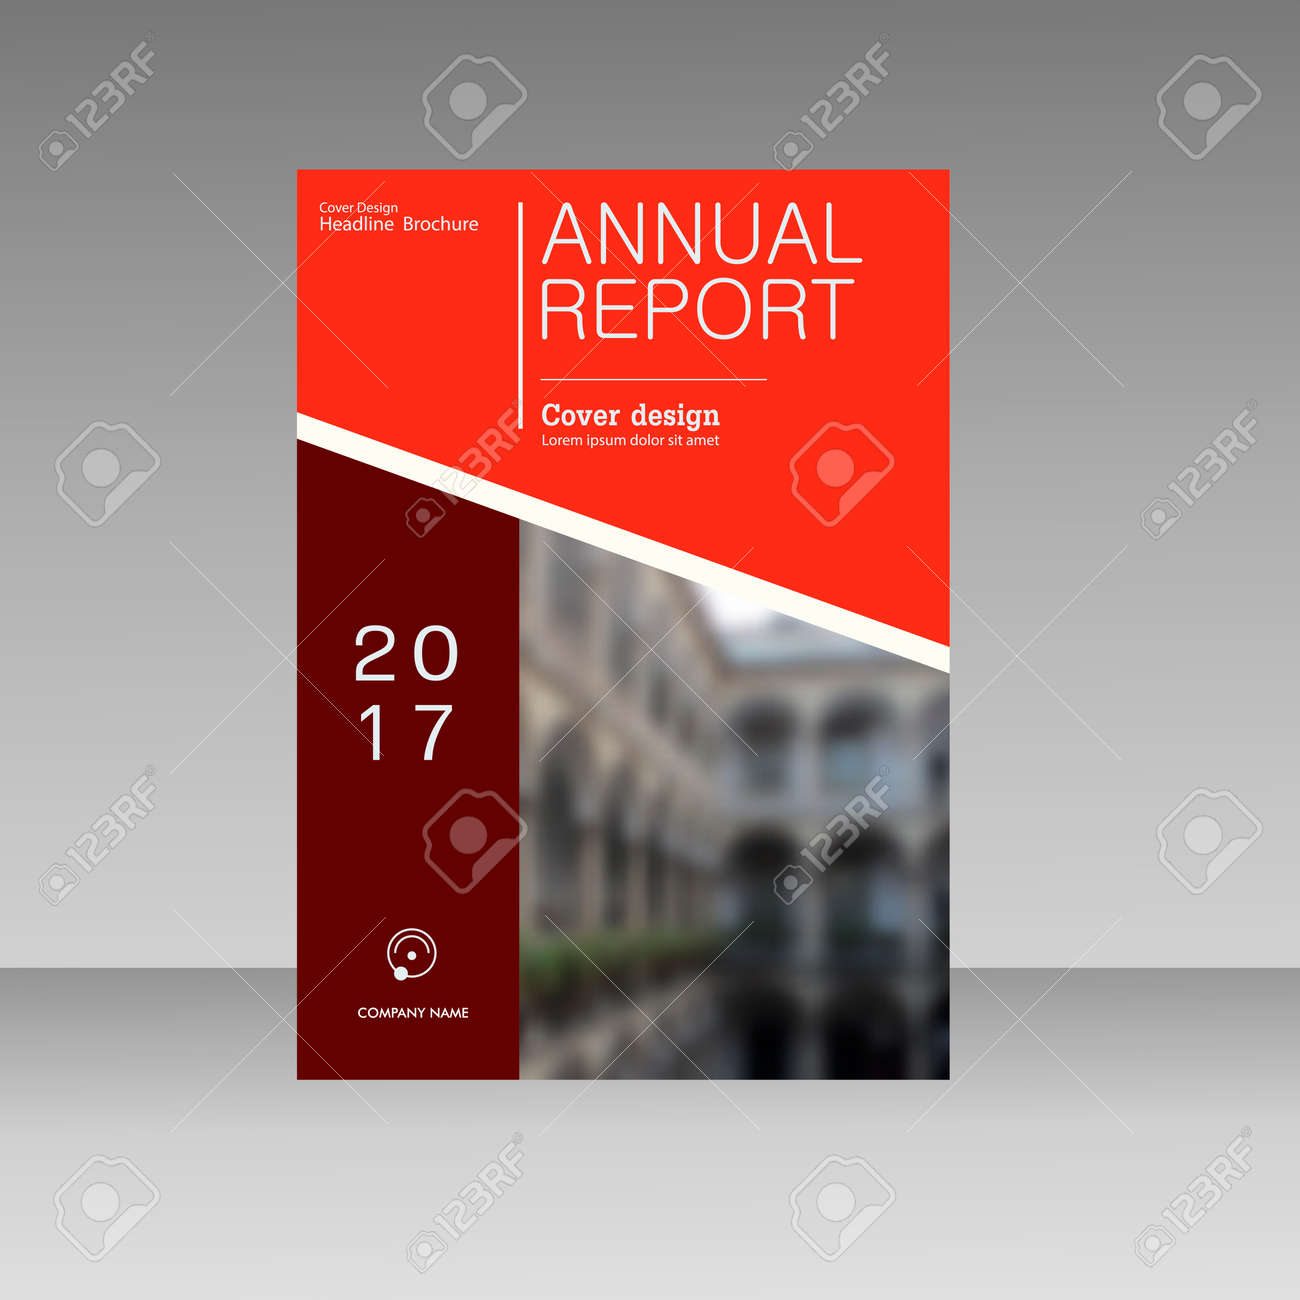 annual report business magazine vector template cover book